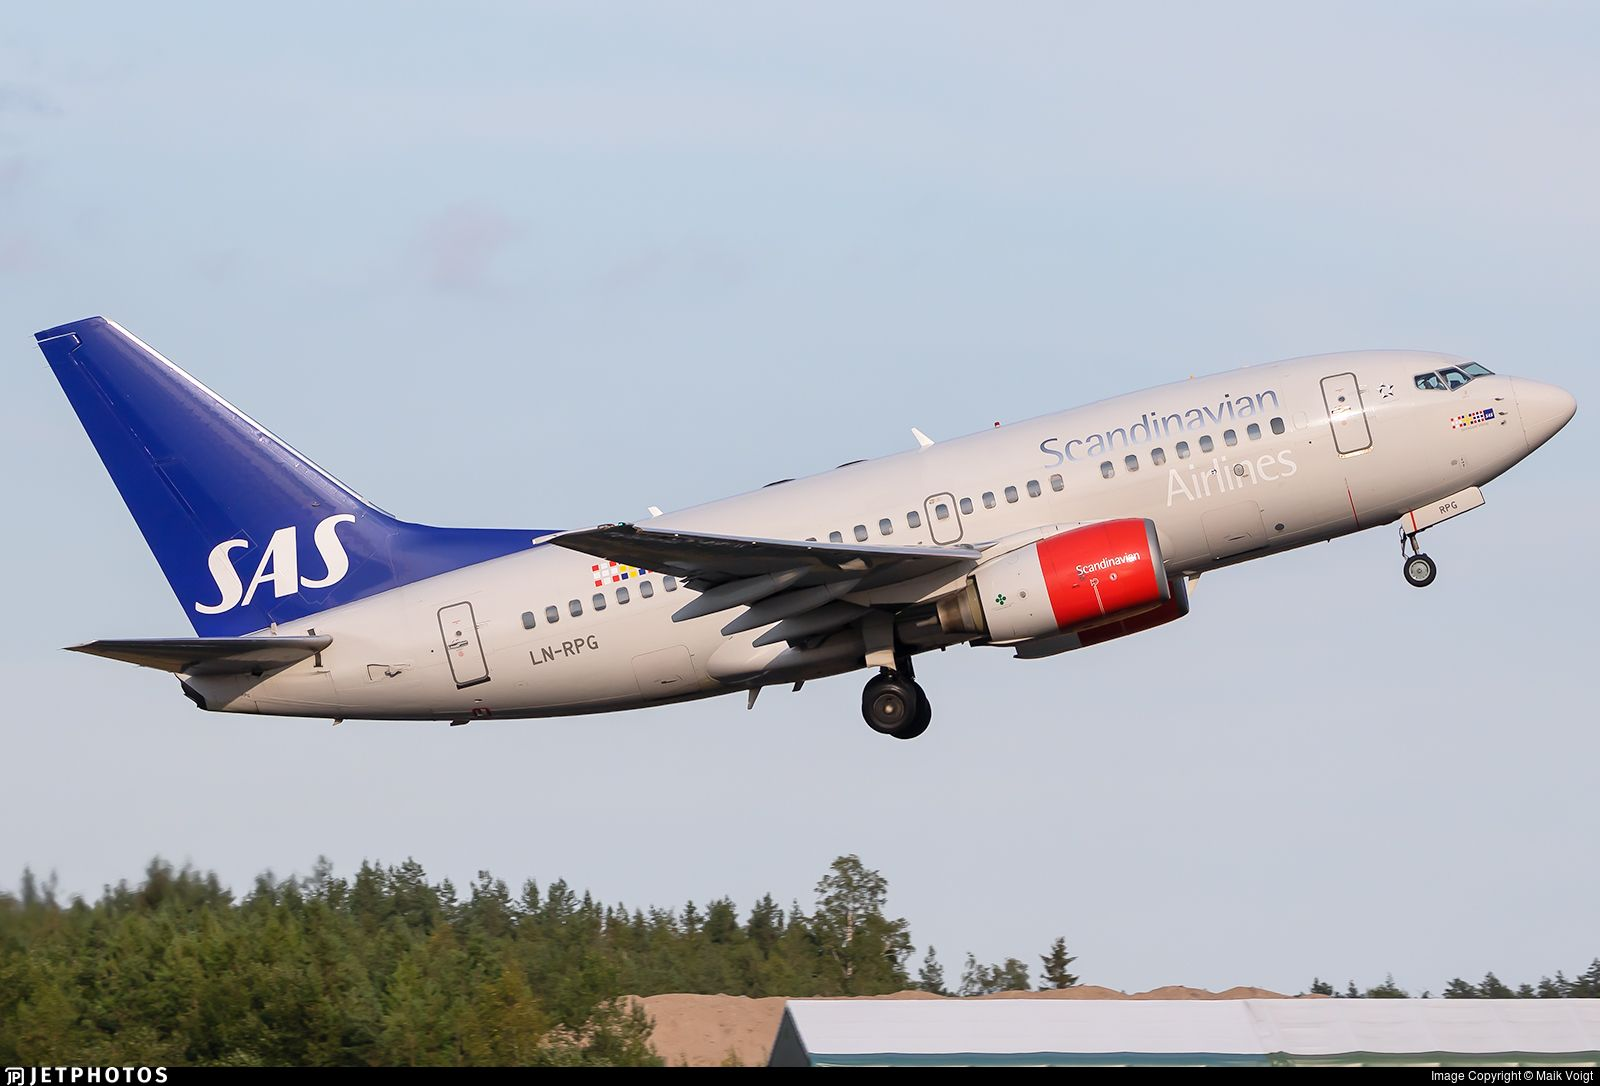 Airline Sas Scandinavian Airlines Registration Ln Rp G Aircraft Variant Customer Code Boeing 737 86n Aircraft Name Geirmund Viking Location Stockholm Arlan